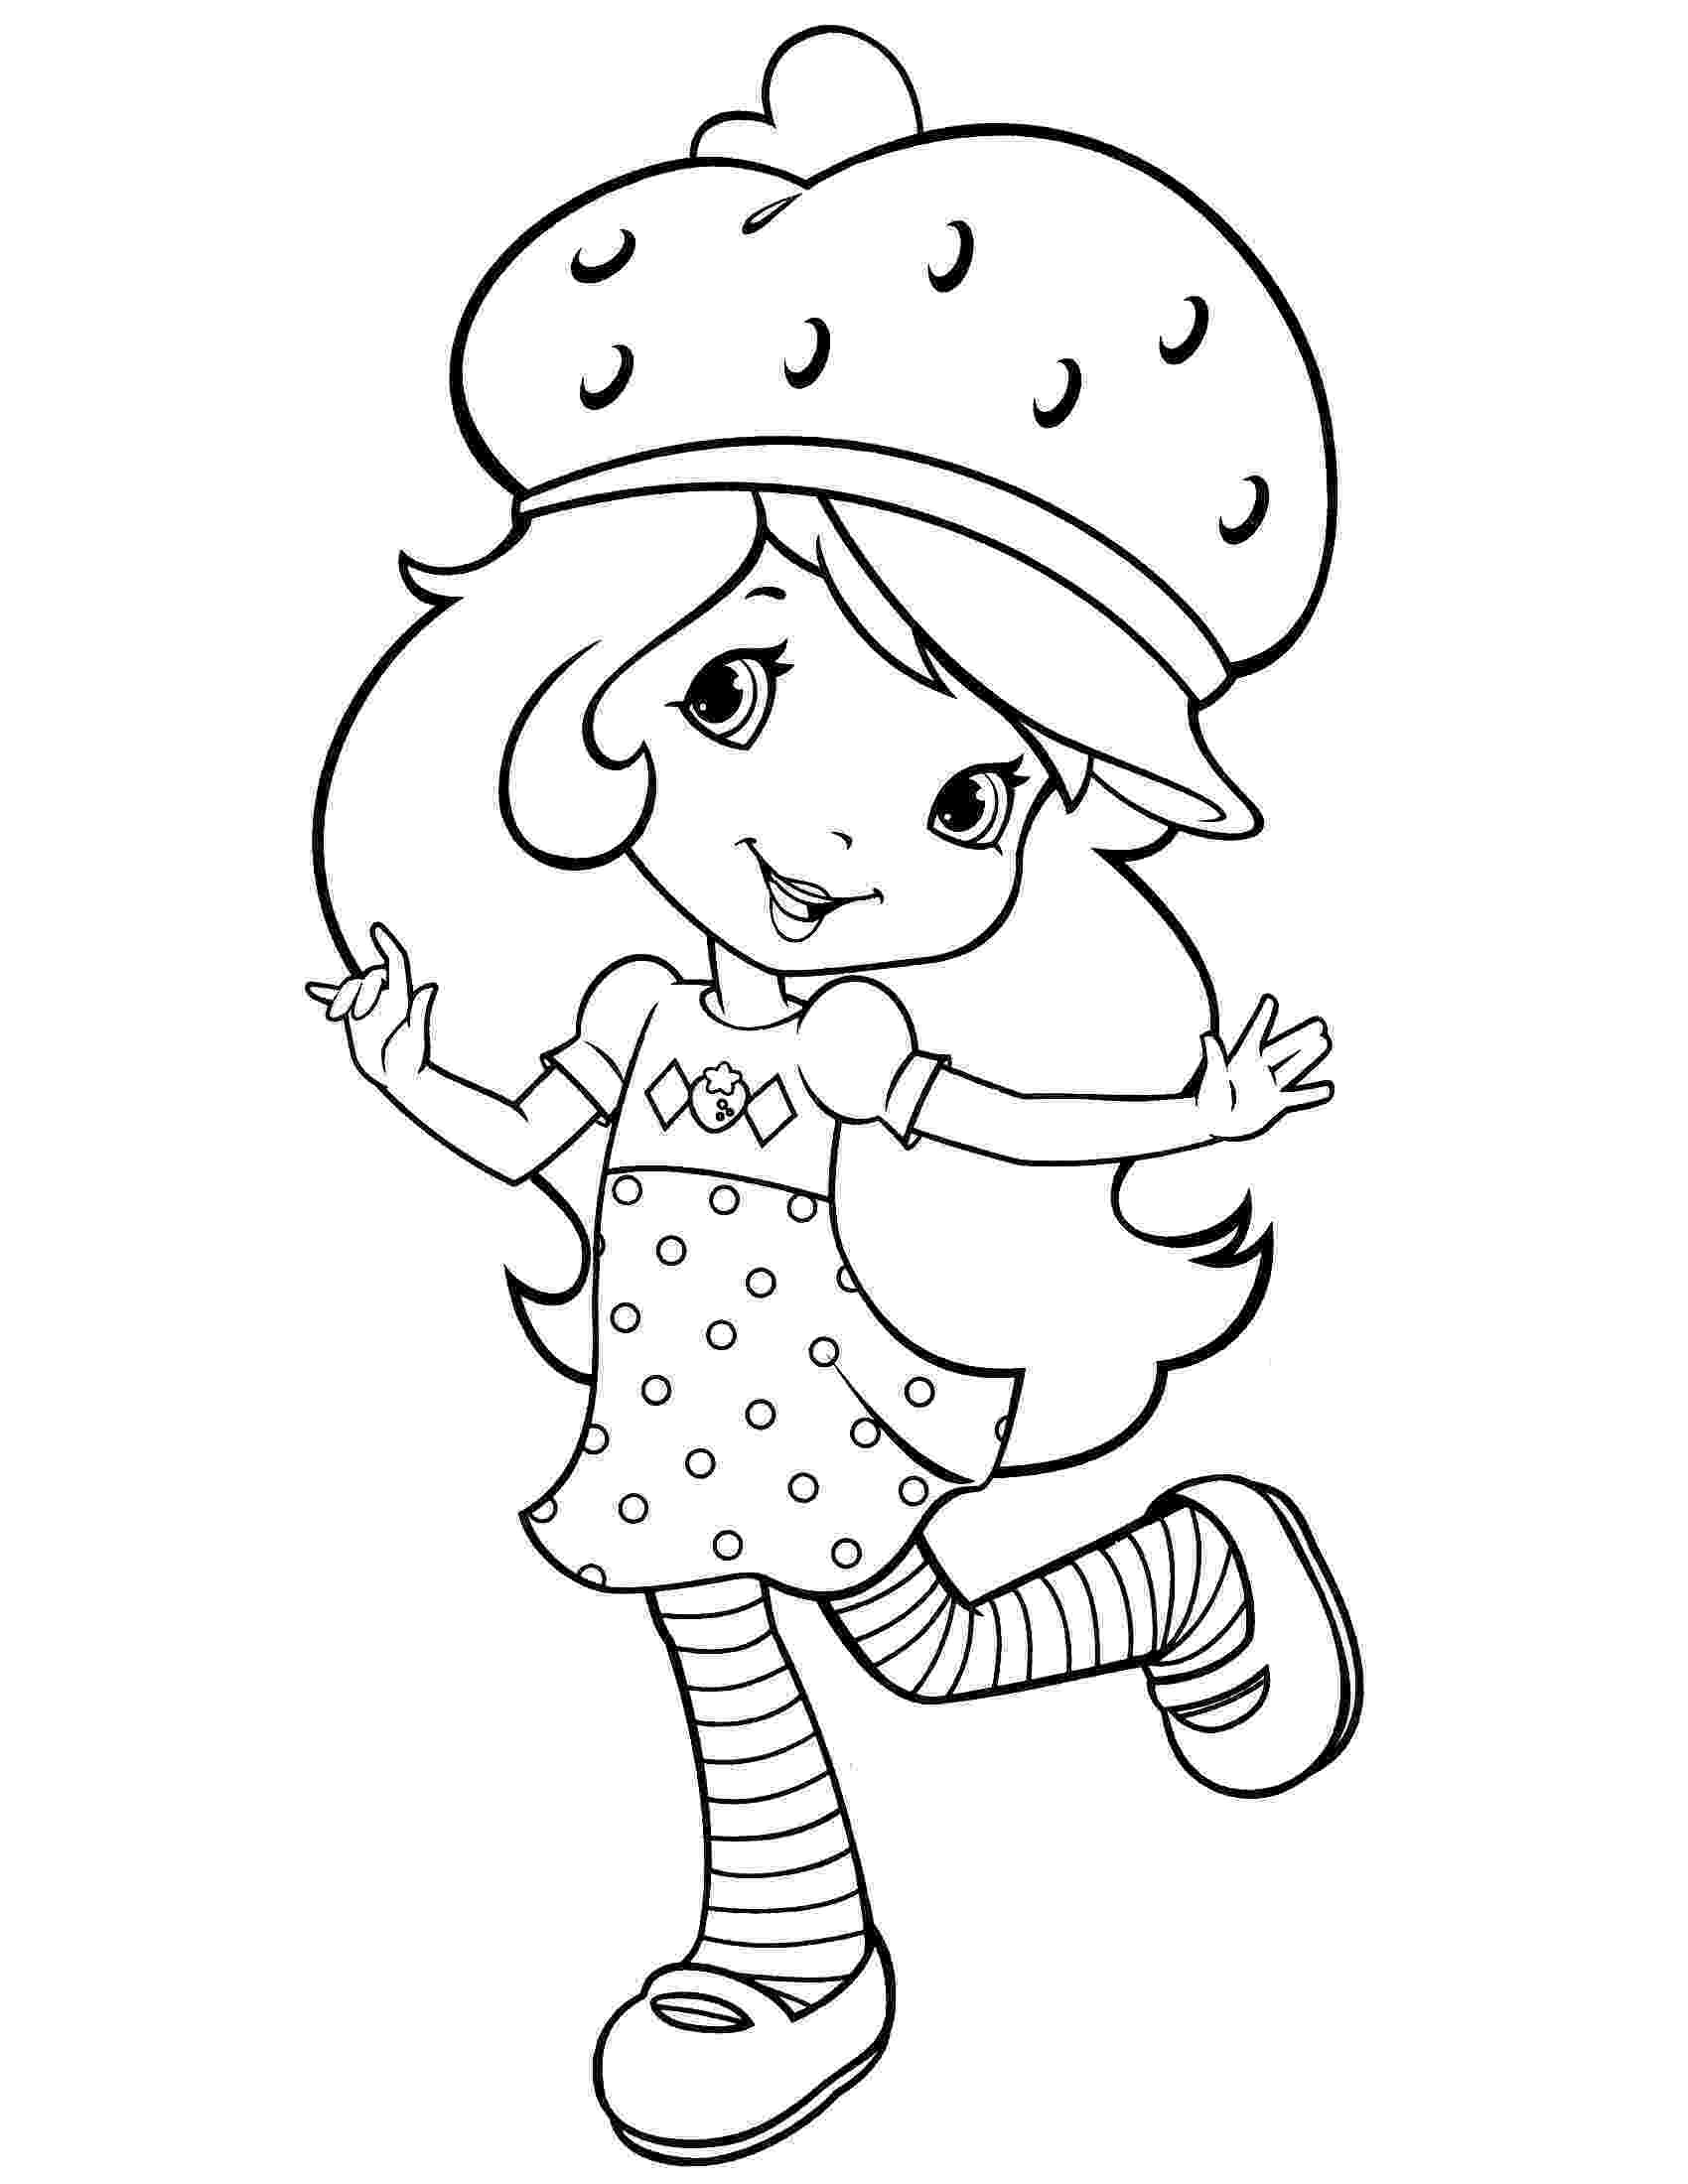 coloring pages strawberry shortcake strawberry shortcake backgrounds wallpapertag coloring strawberry shortcake pages